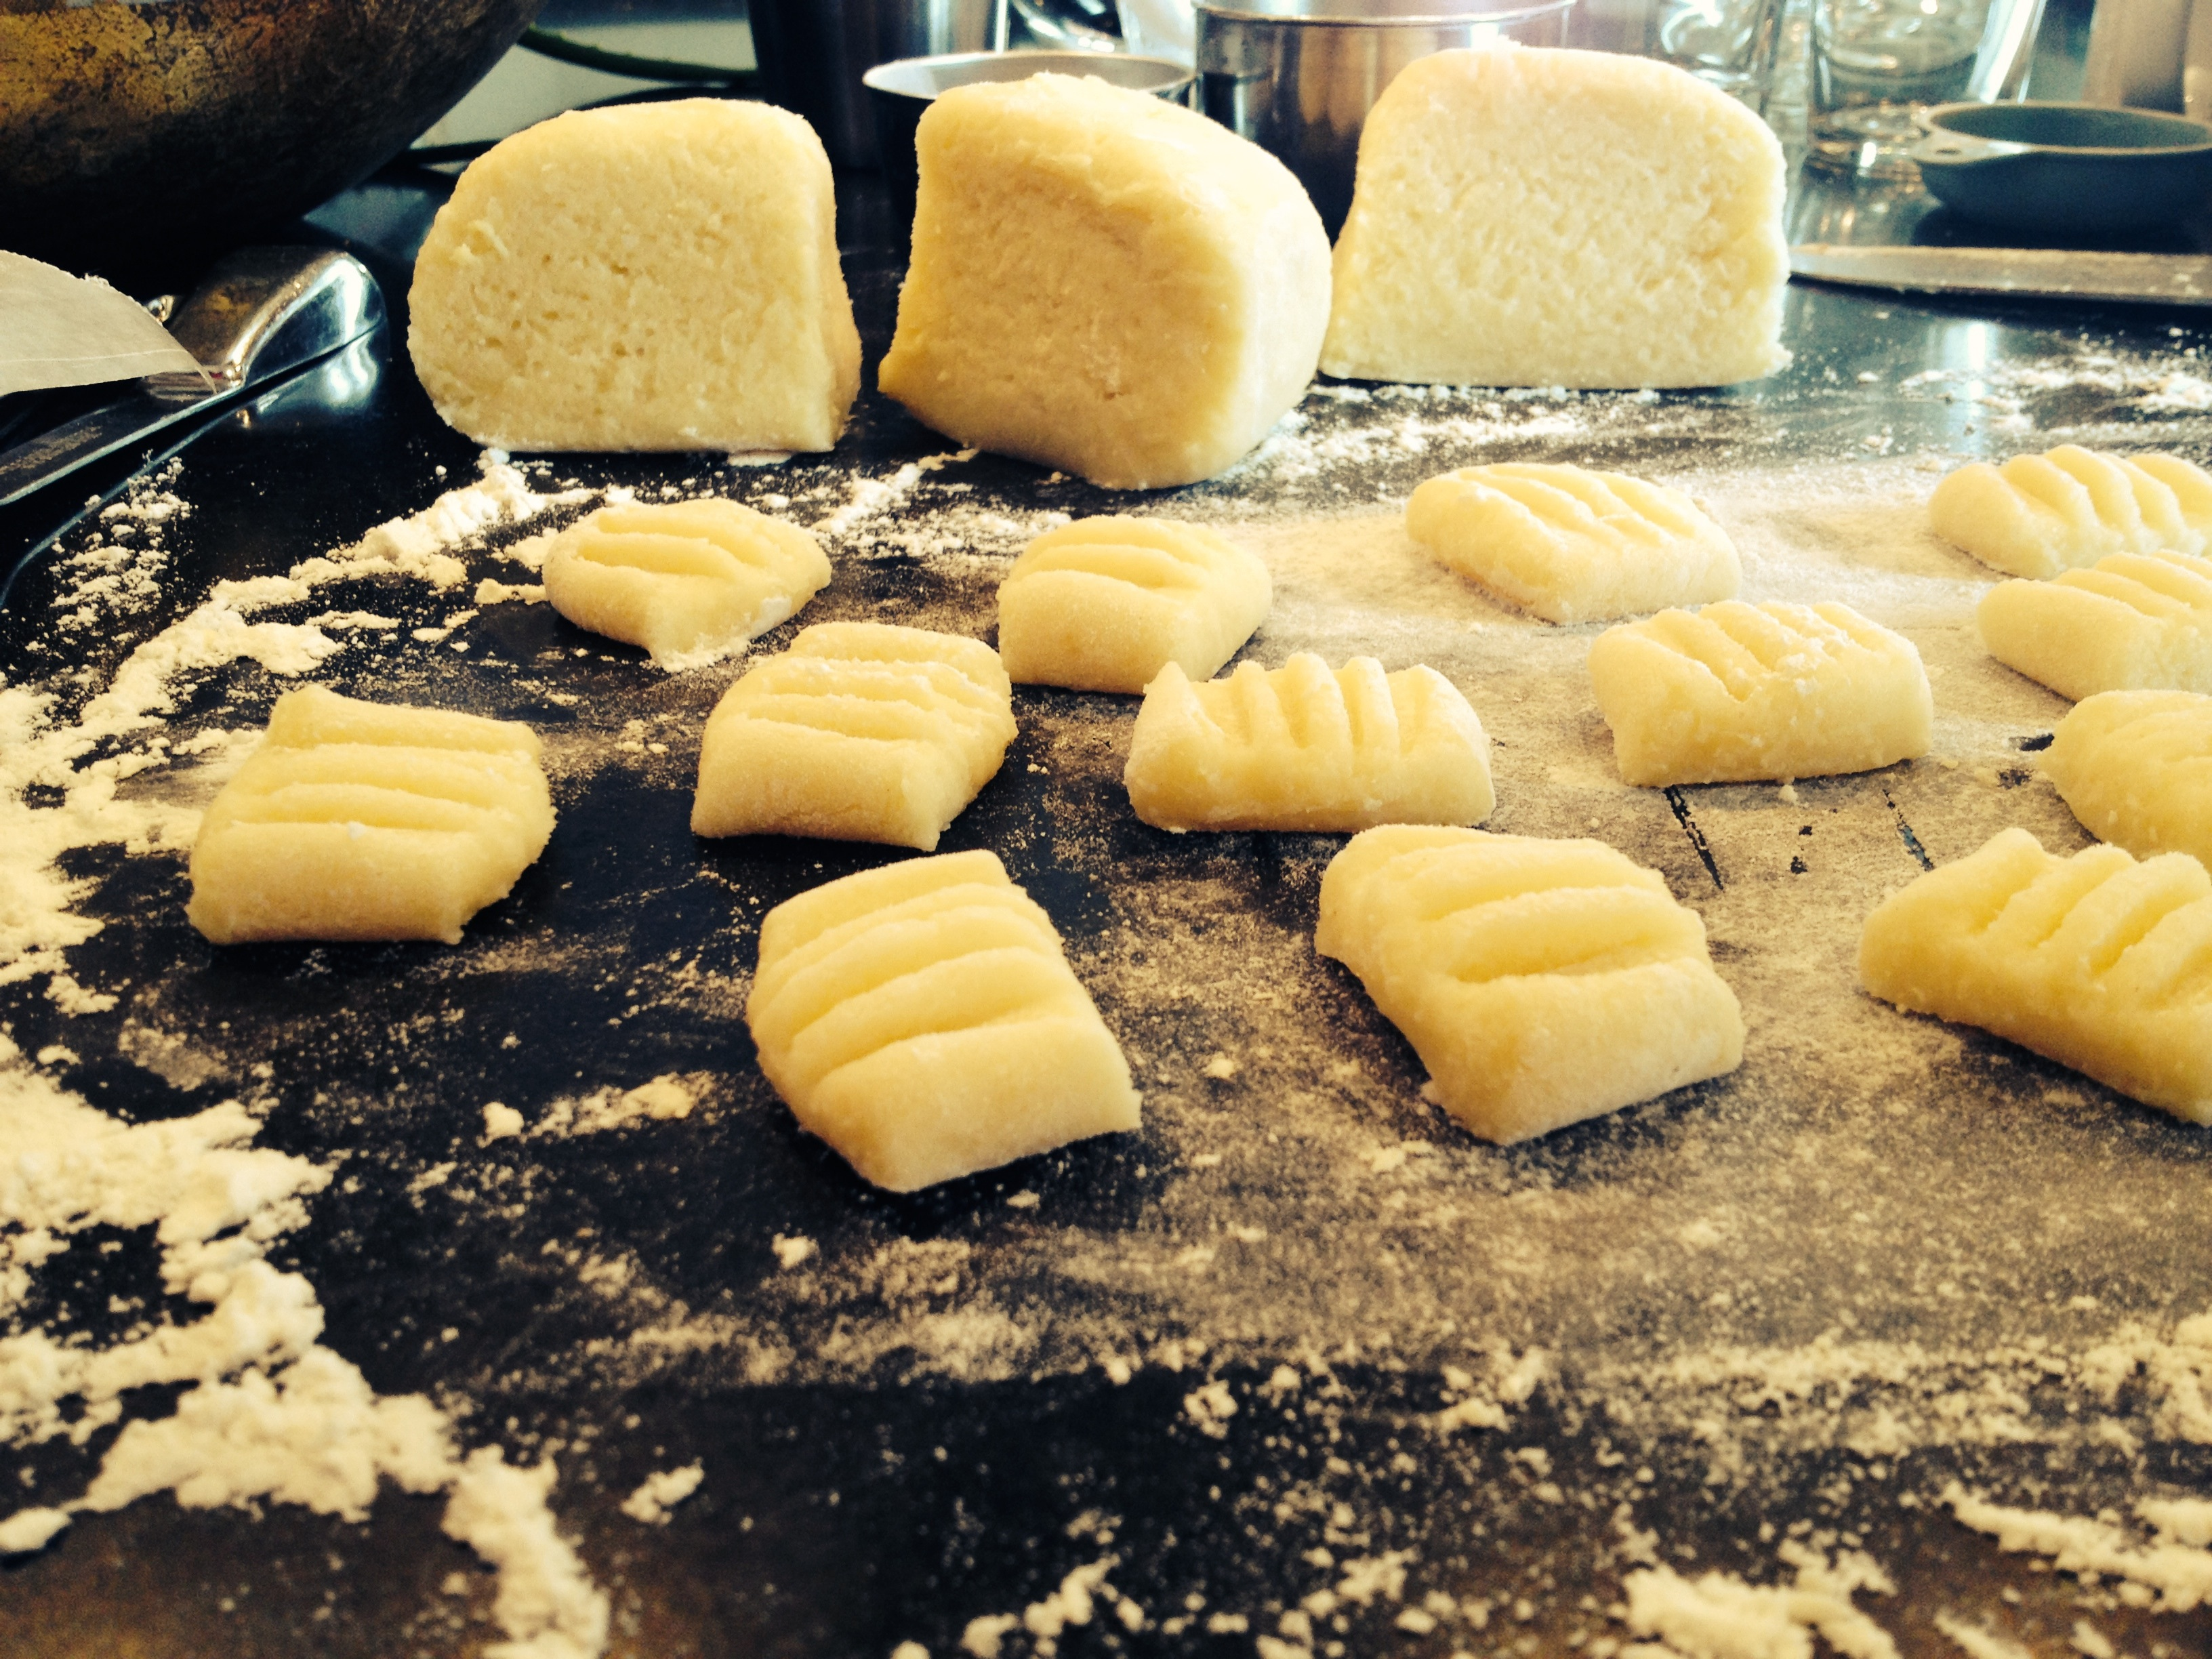 Homemade gnocchi being made - delicate little pillows.